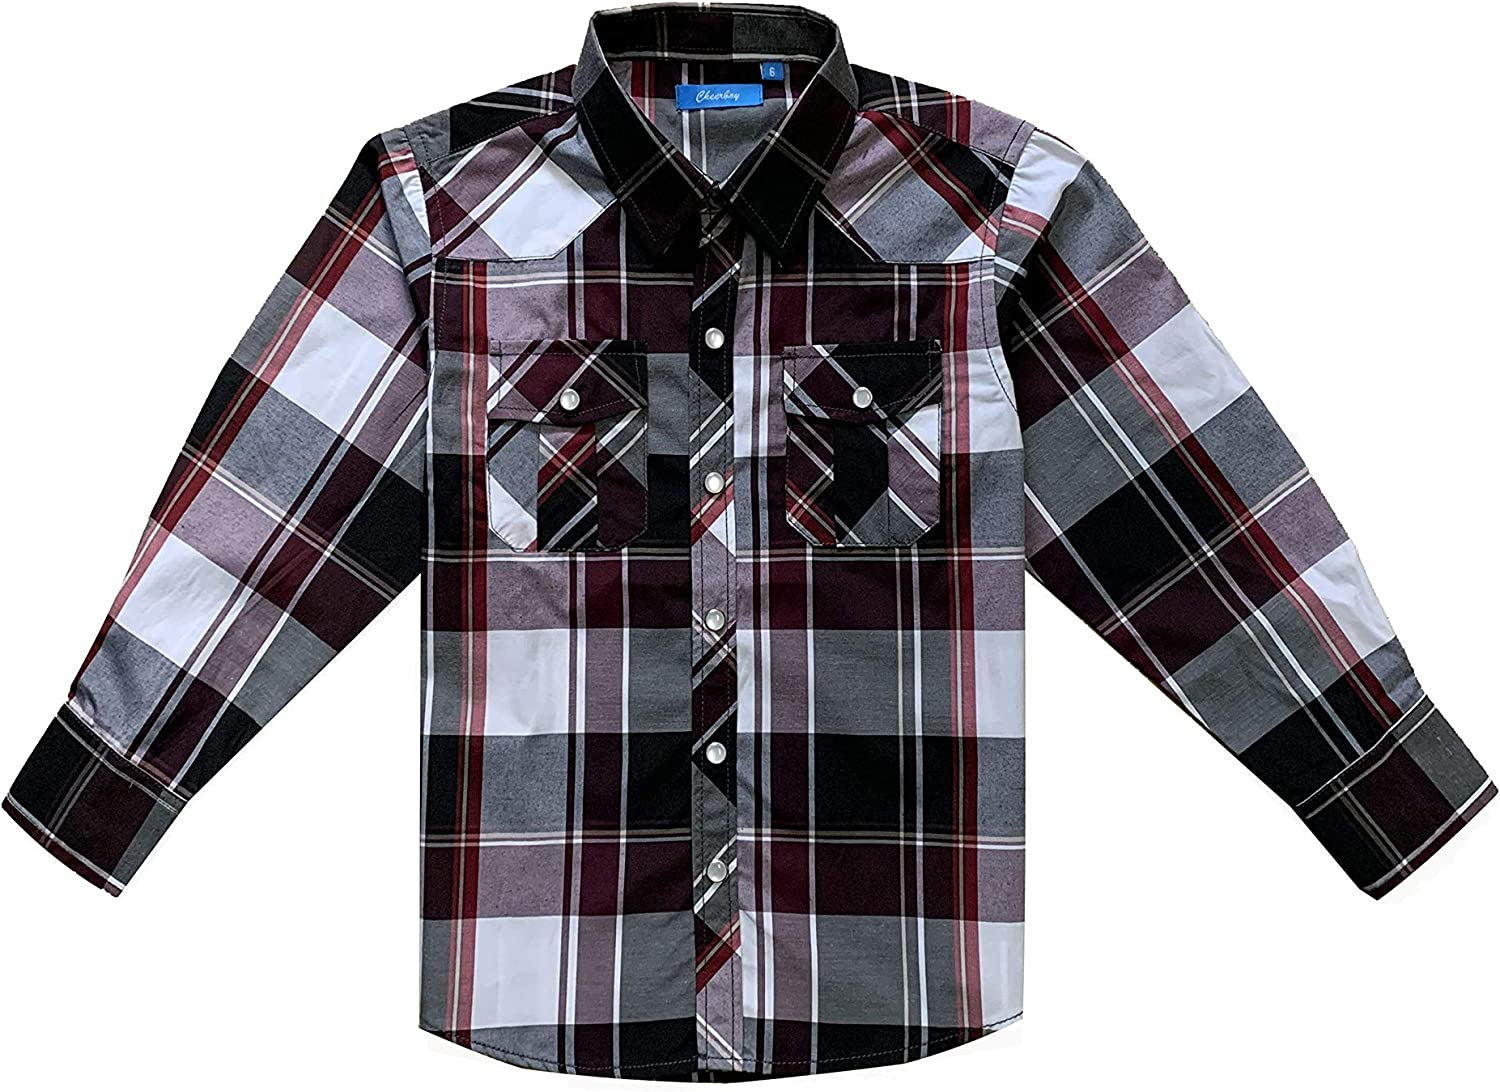 Boys Toddler Kids Casual Long Sleeve Western Pearl Snap Button Plaid Shirt 4-16 Years